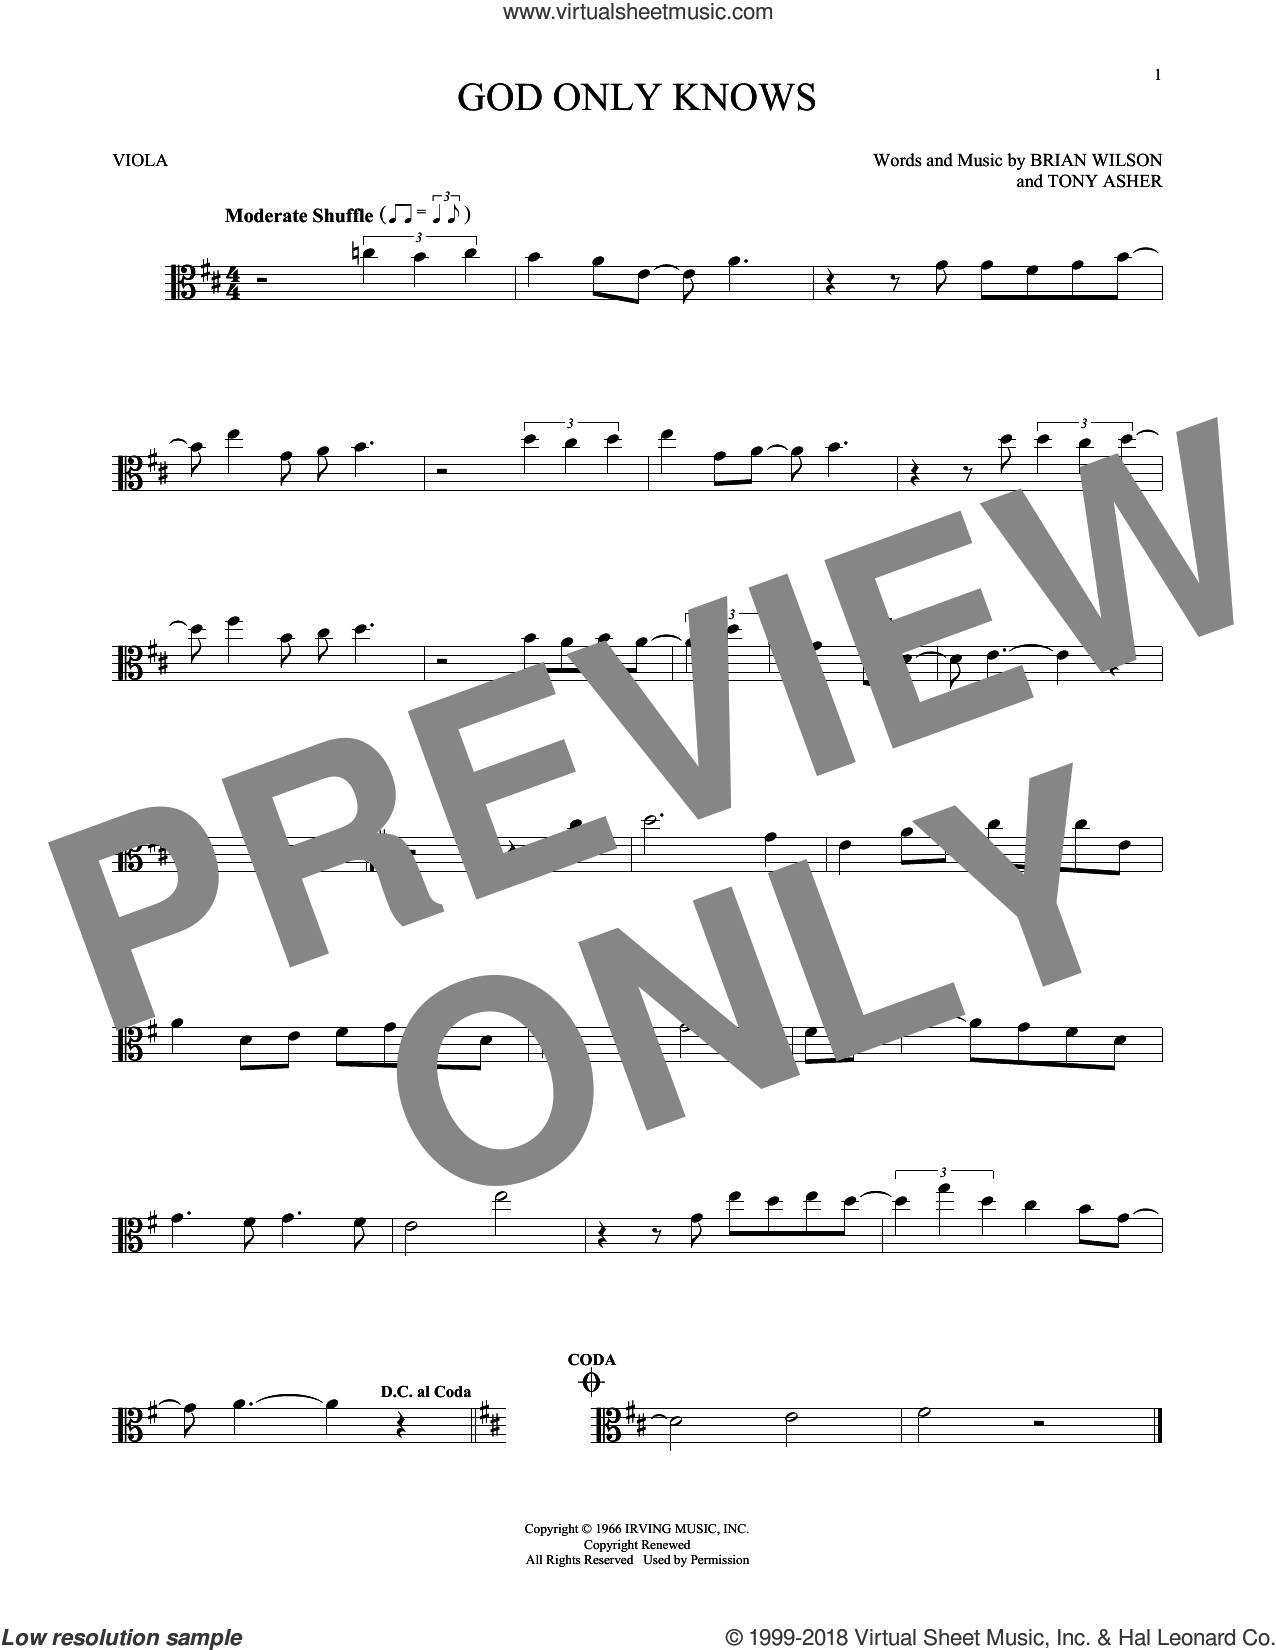 God Only Knows sheet music for viola solo by Tony Asher, The Beach Boys and Brian Wilson. Score Image Preview.